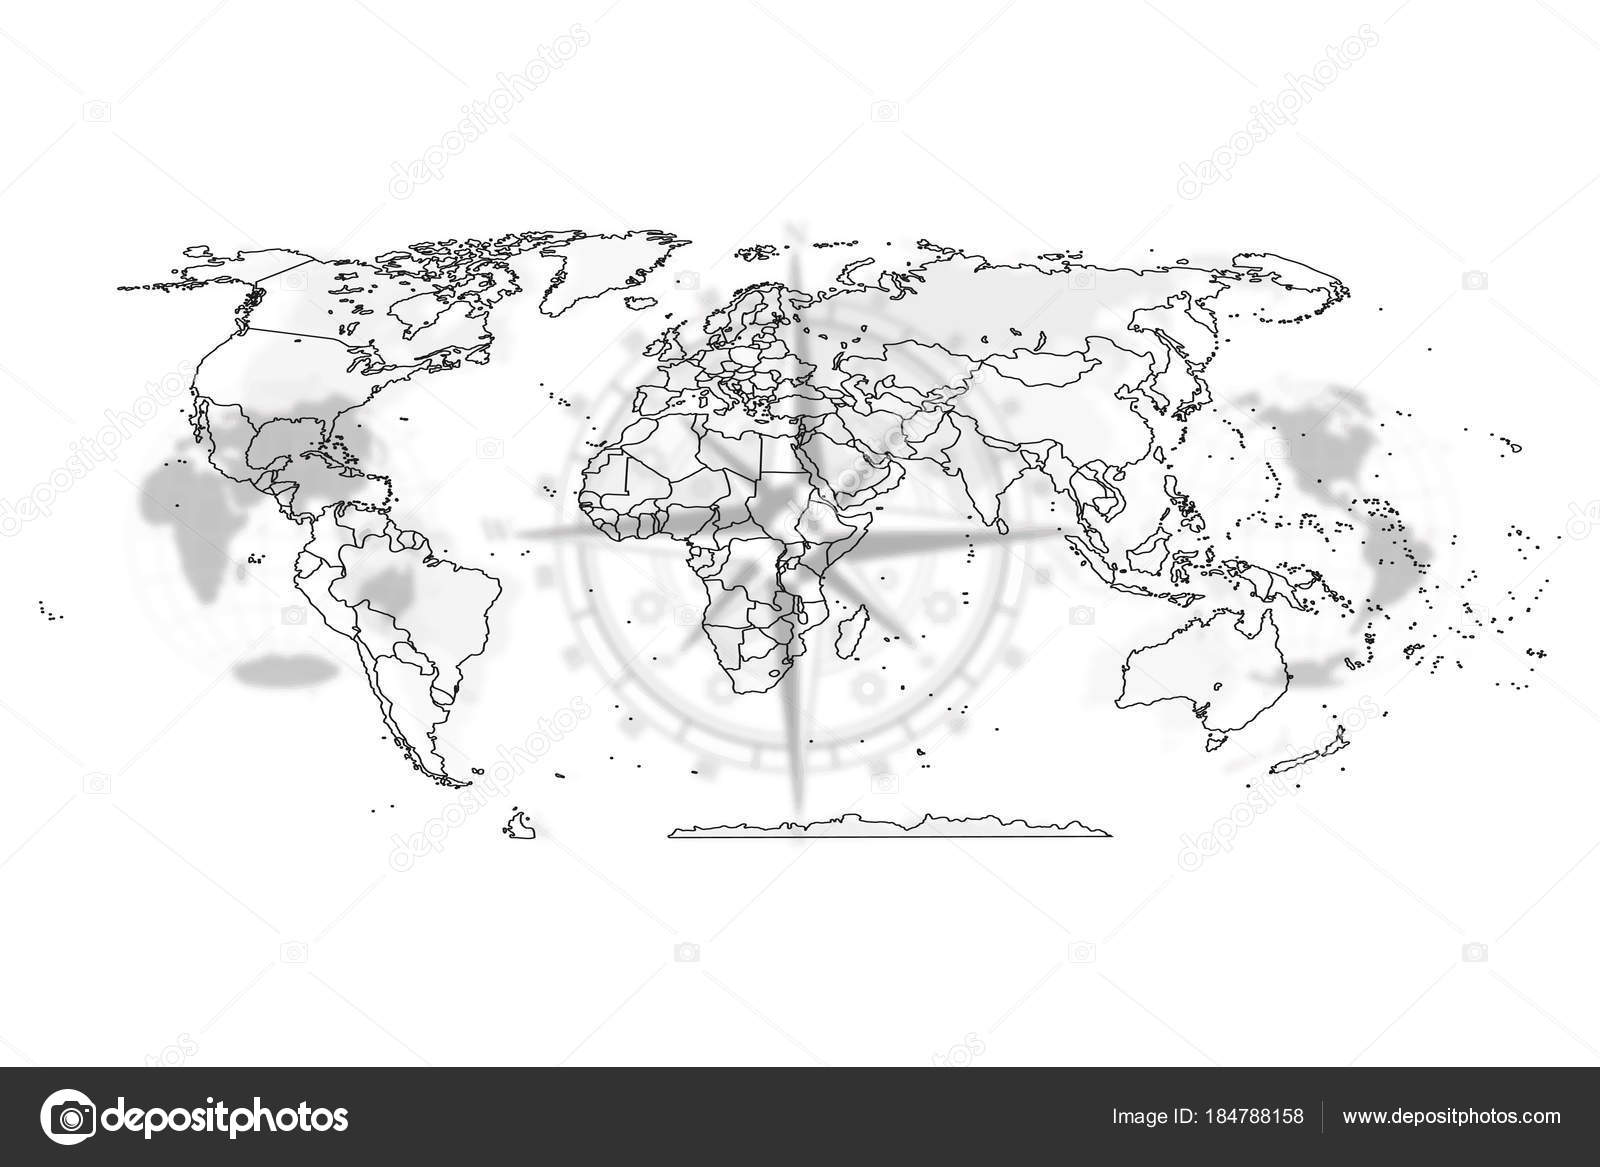 Map political abstract of the world stock vector mertsalovvw map political abstract of the world stock vector gumiabroncs Image collections